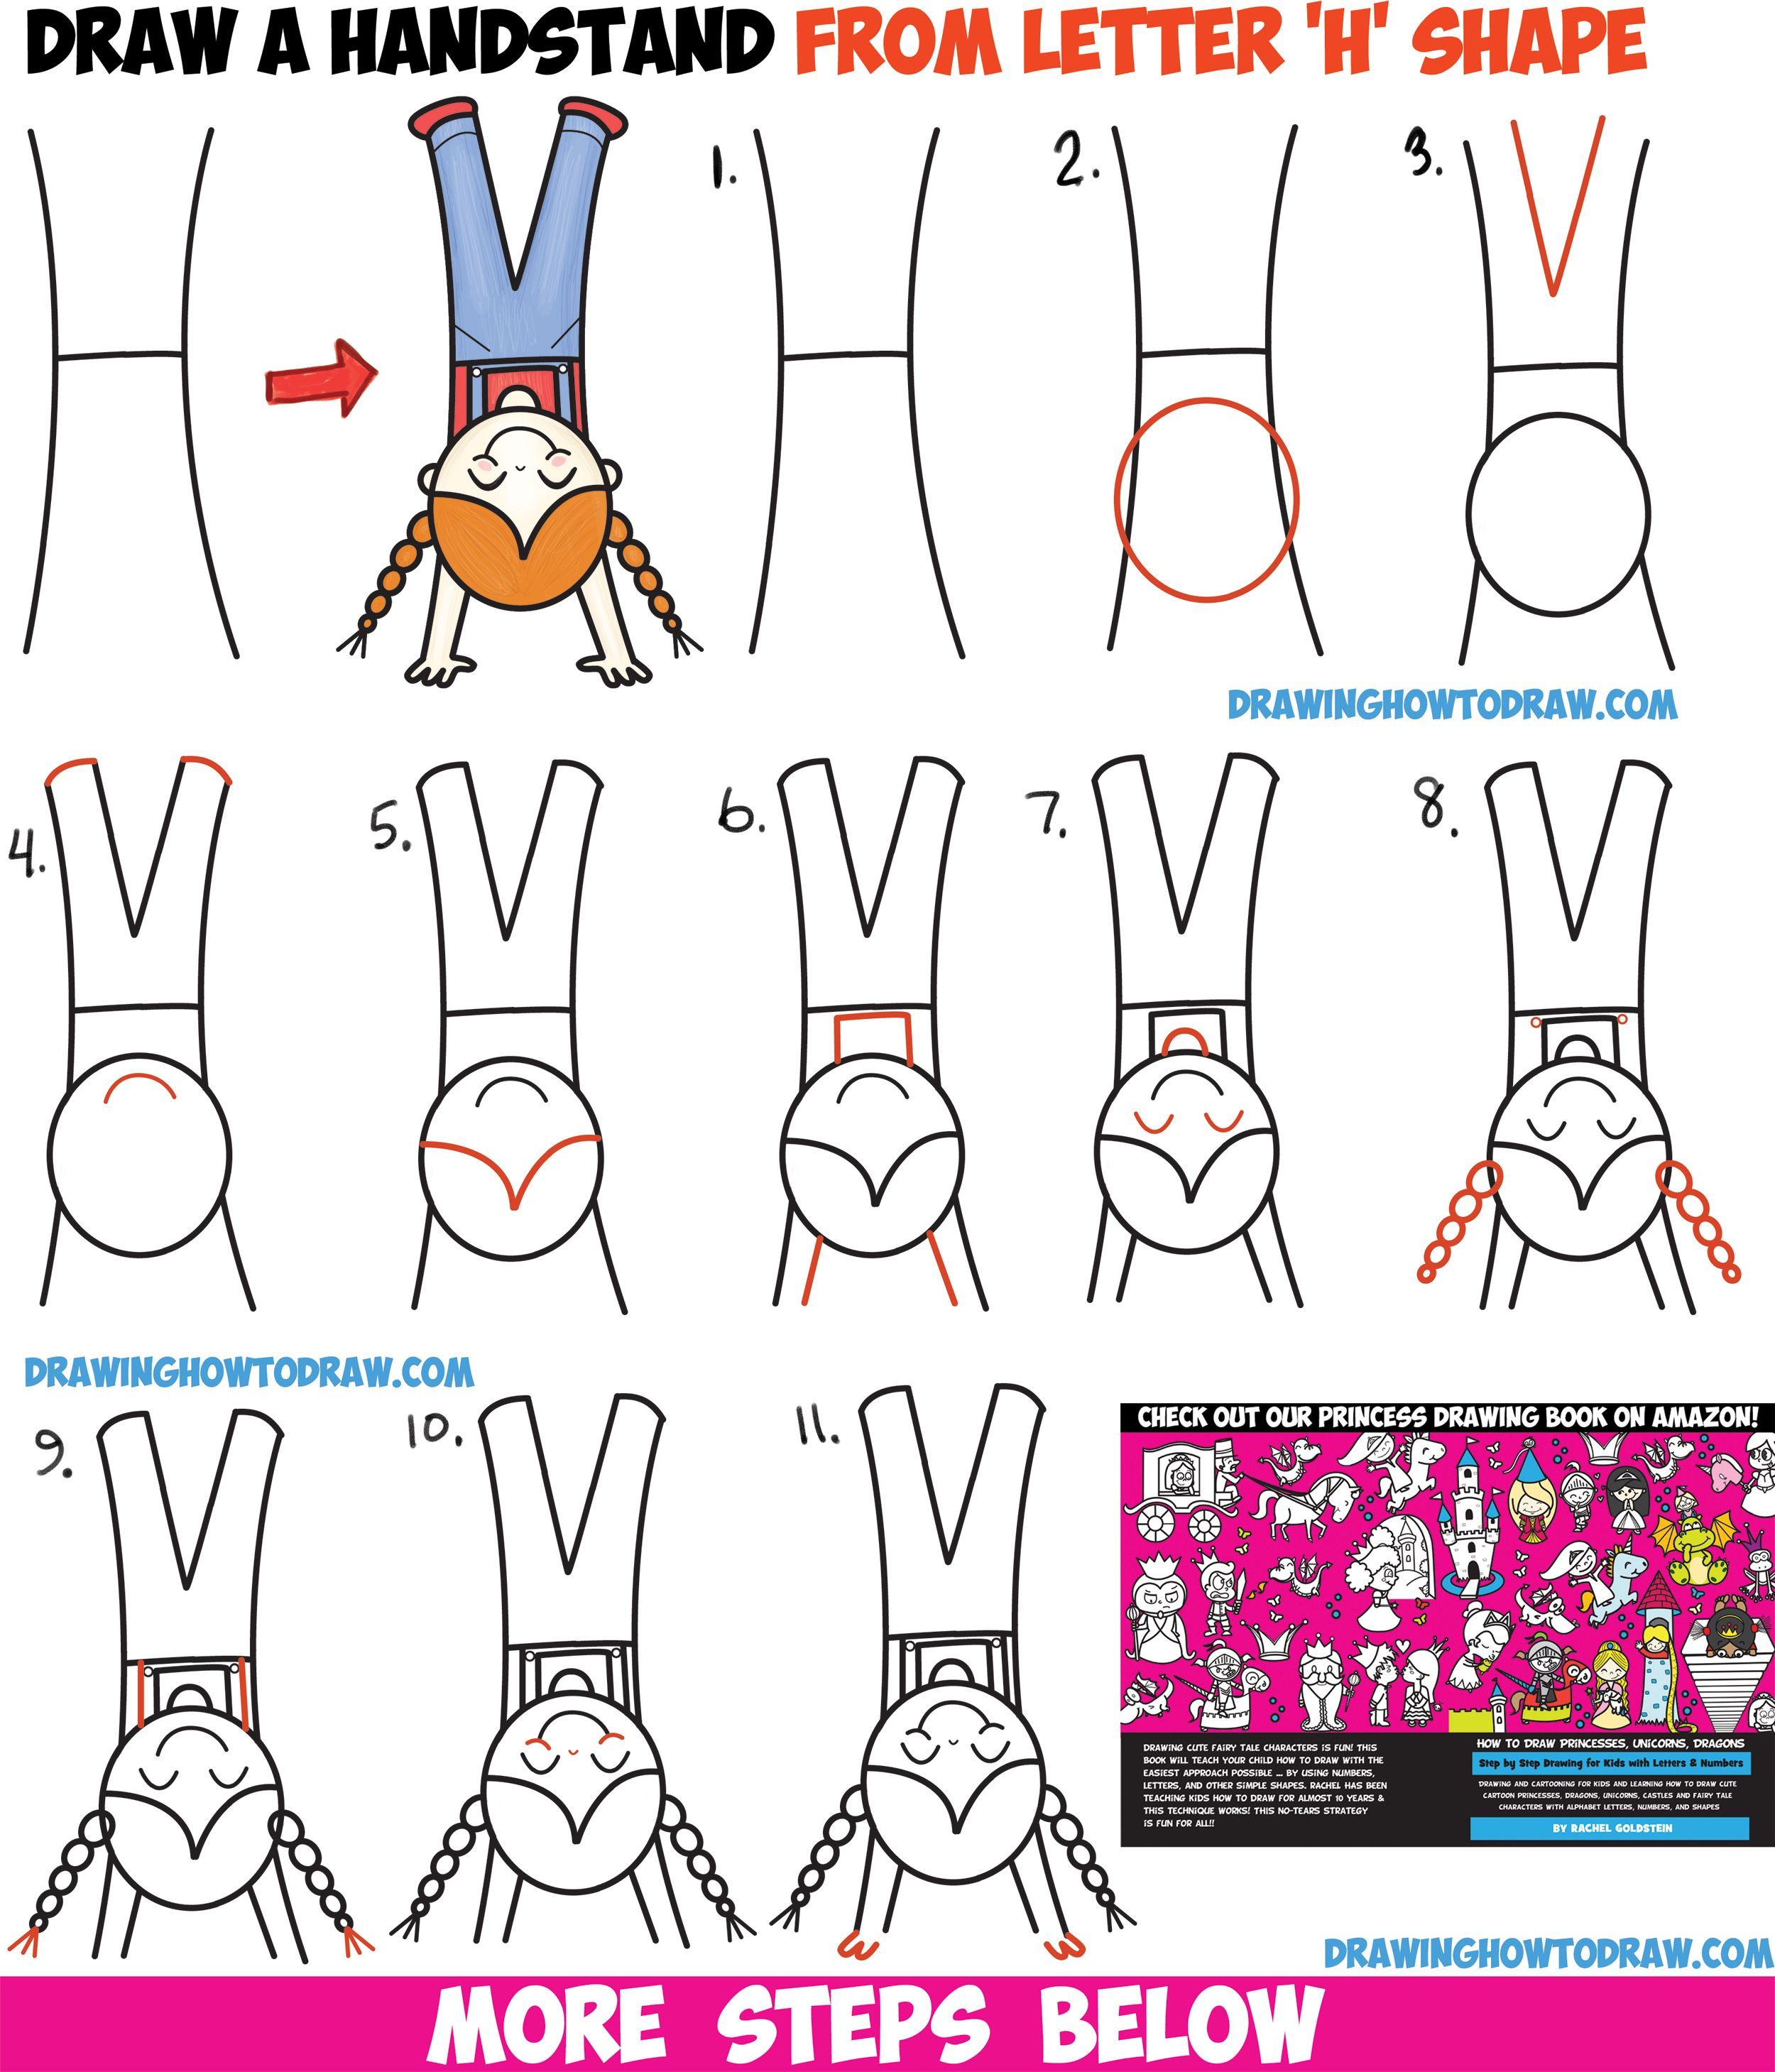 How To Draw A Cute Cartoon Kawaii Girl Doing A Handstand From The